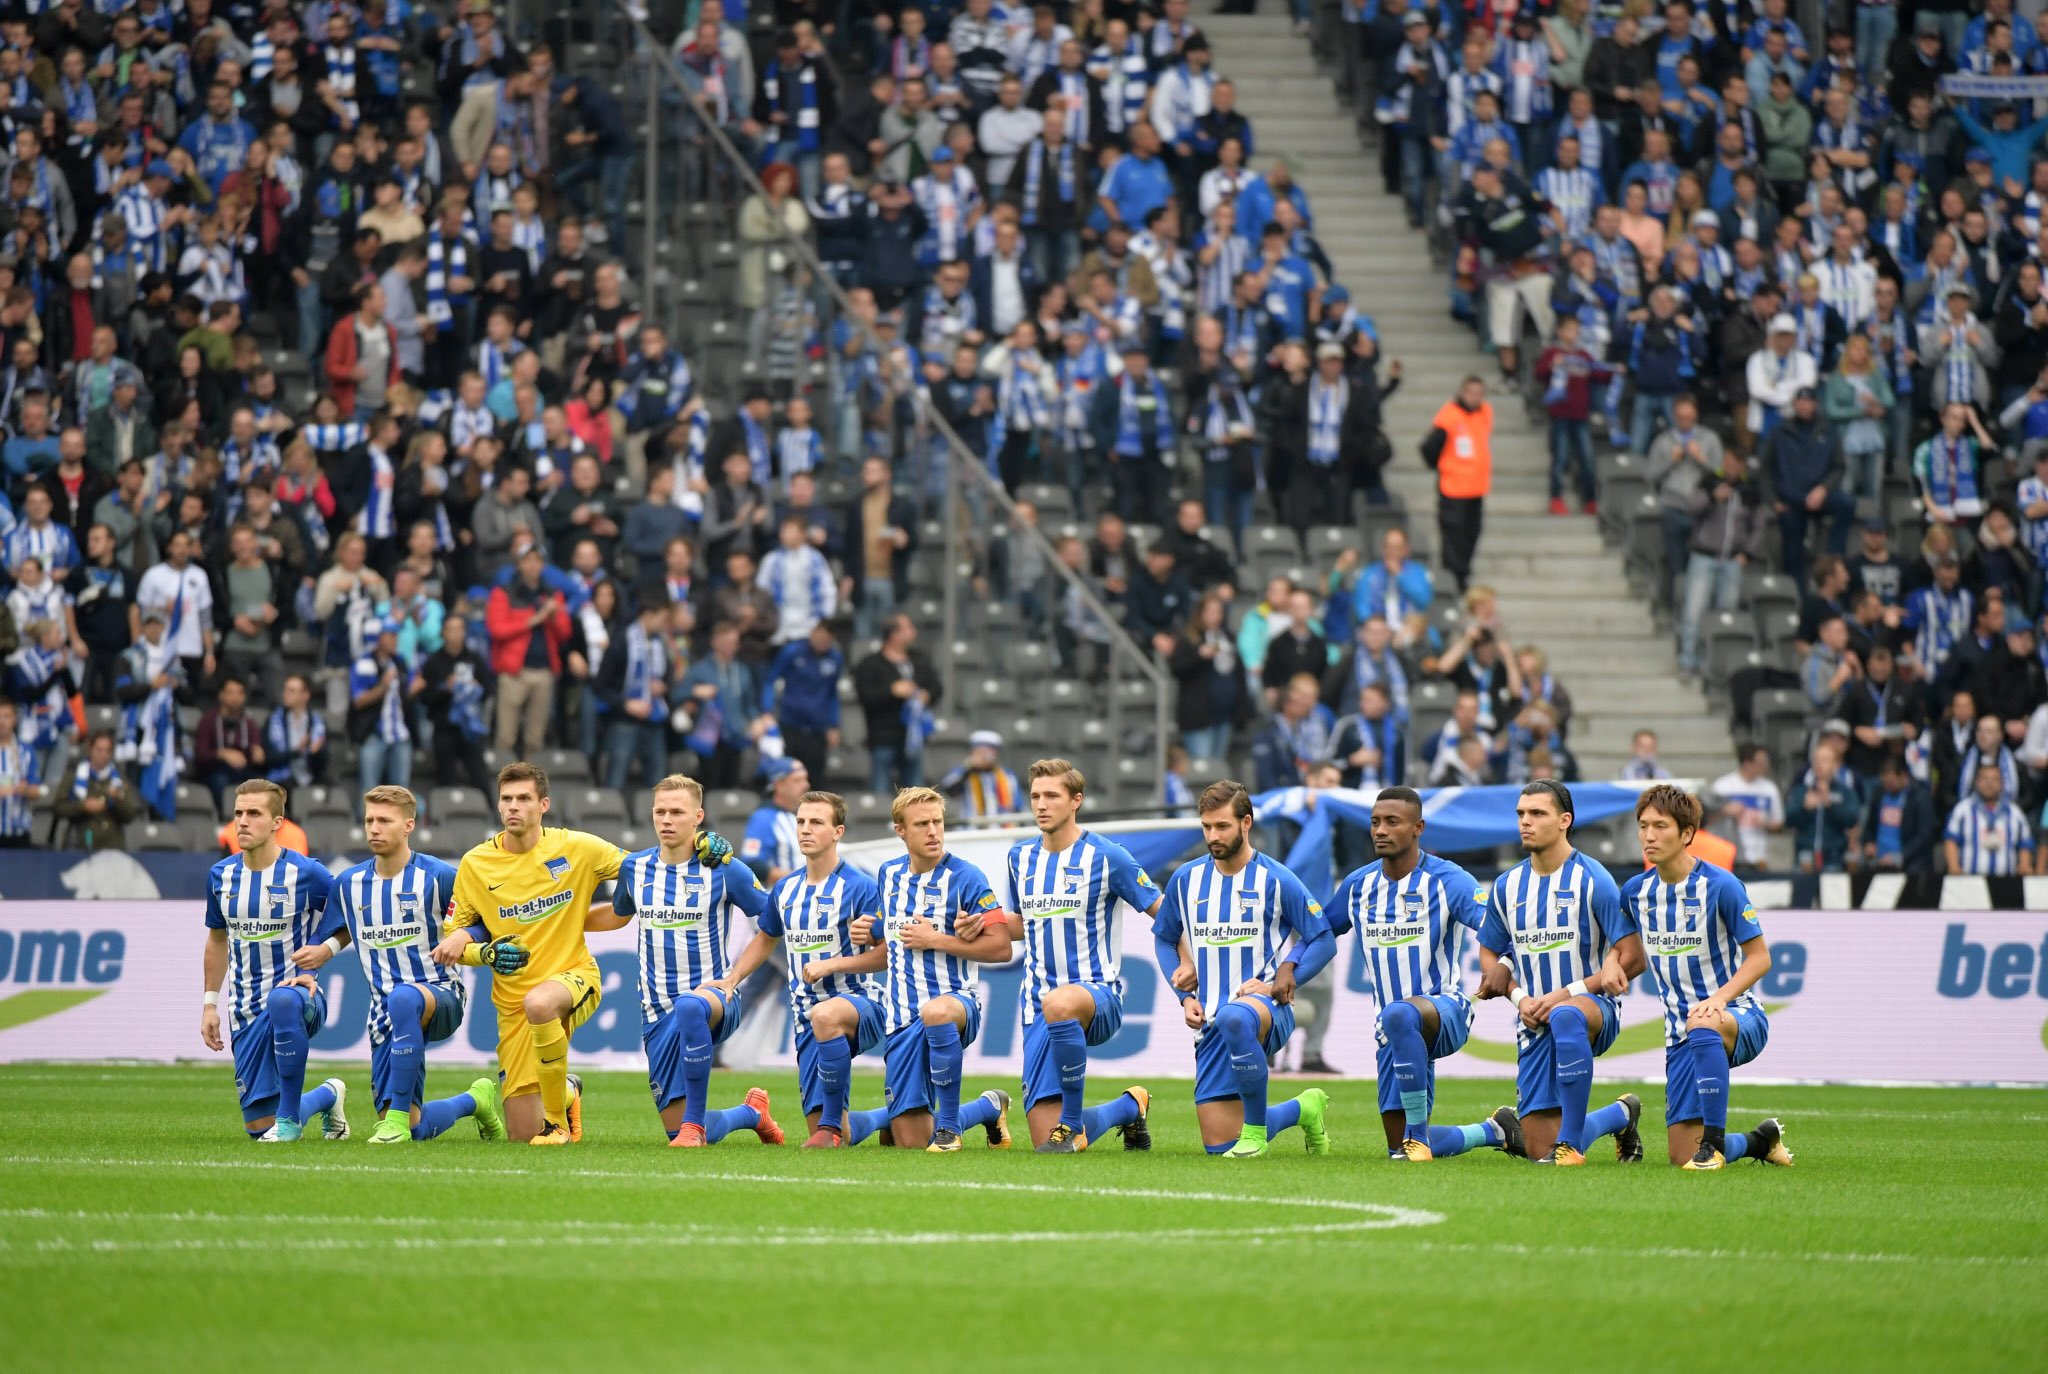 Hertha Berlin players take a knee before their Bundesliga match against Schalke